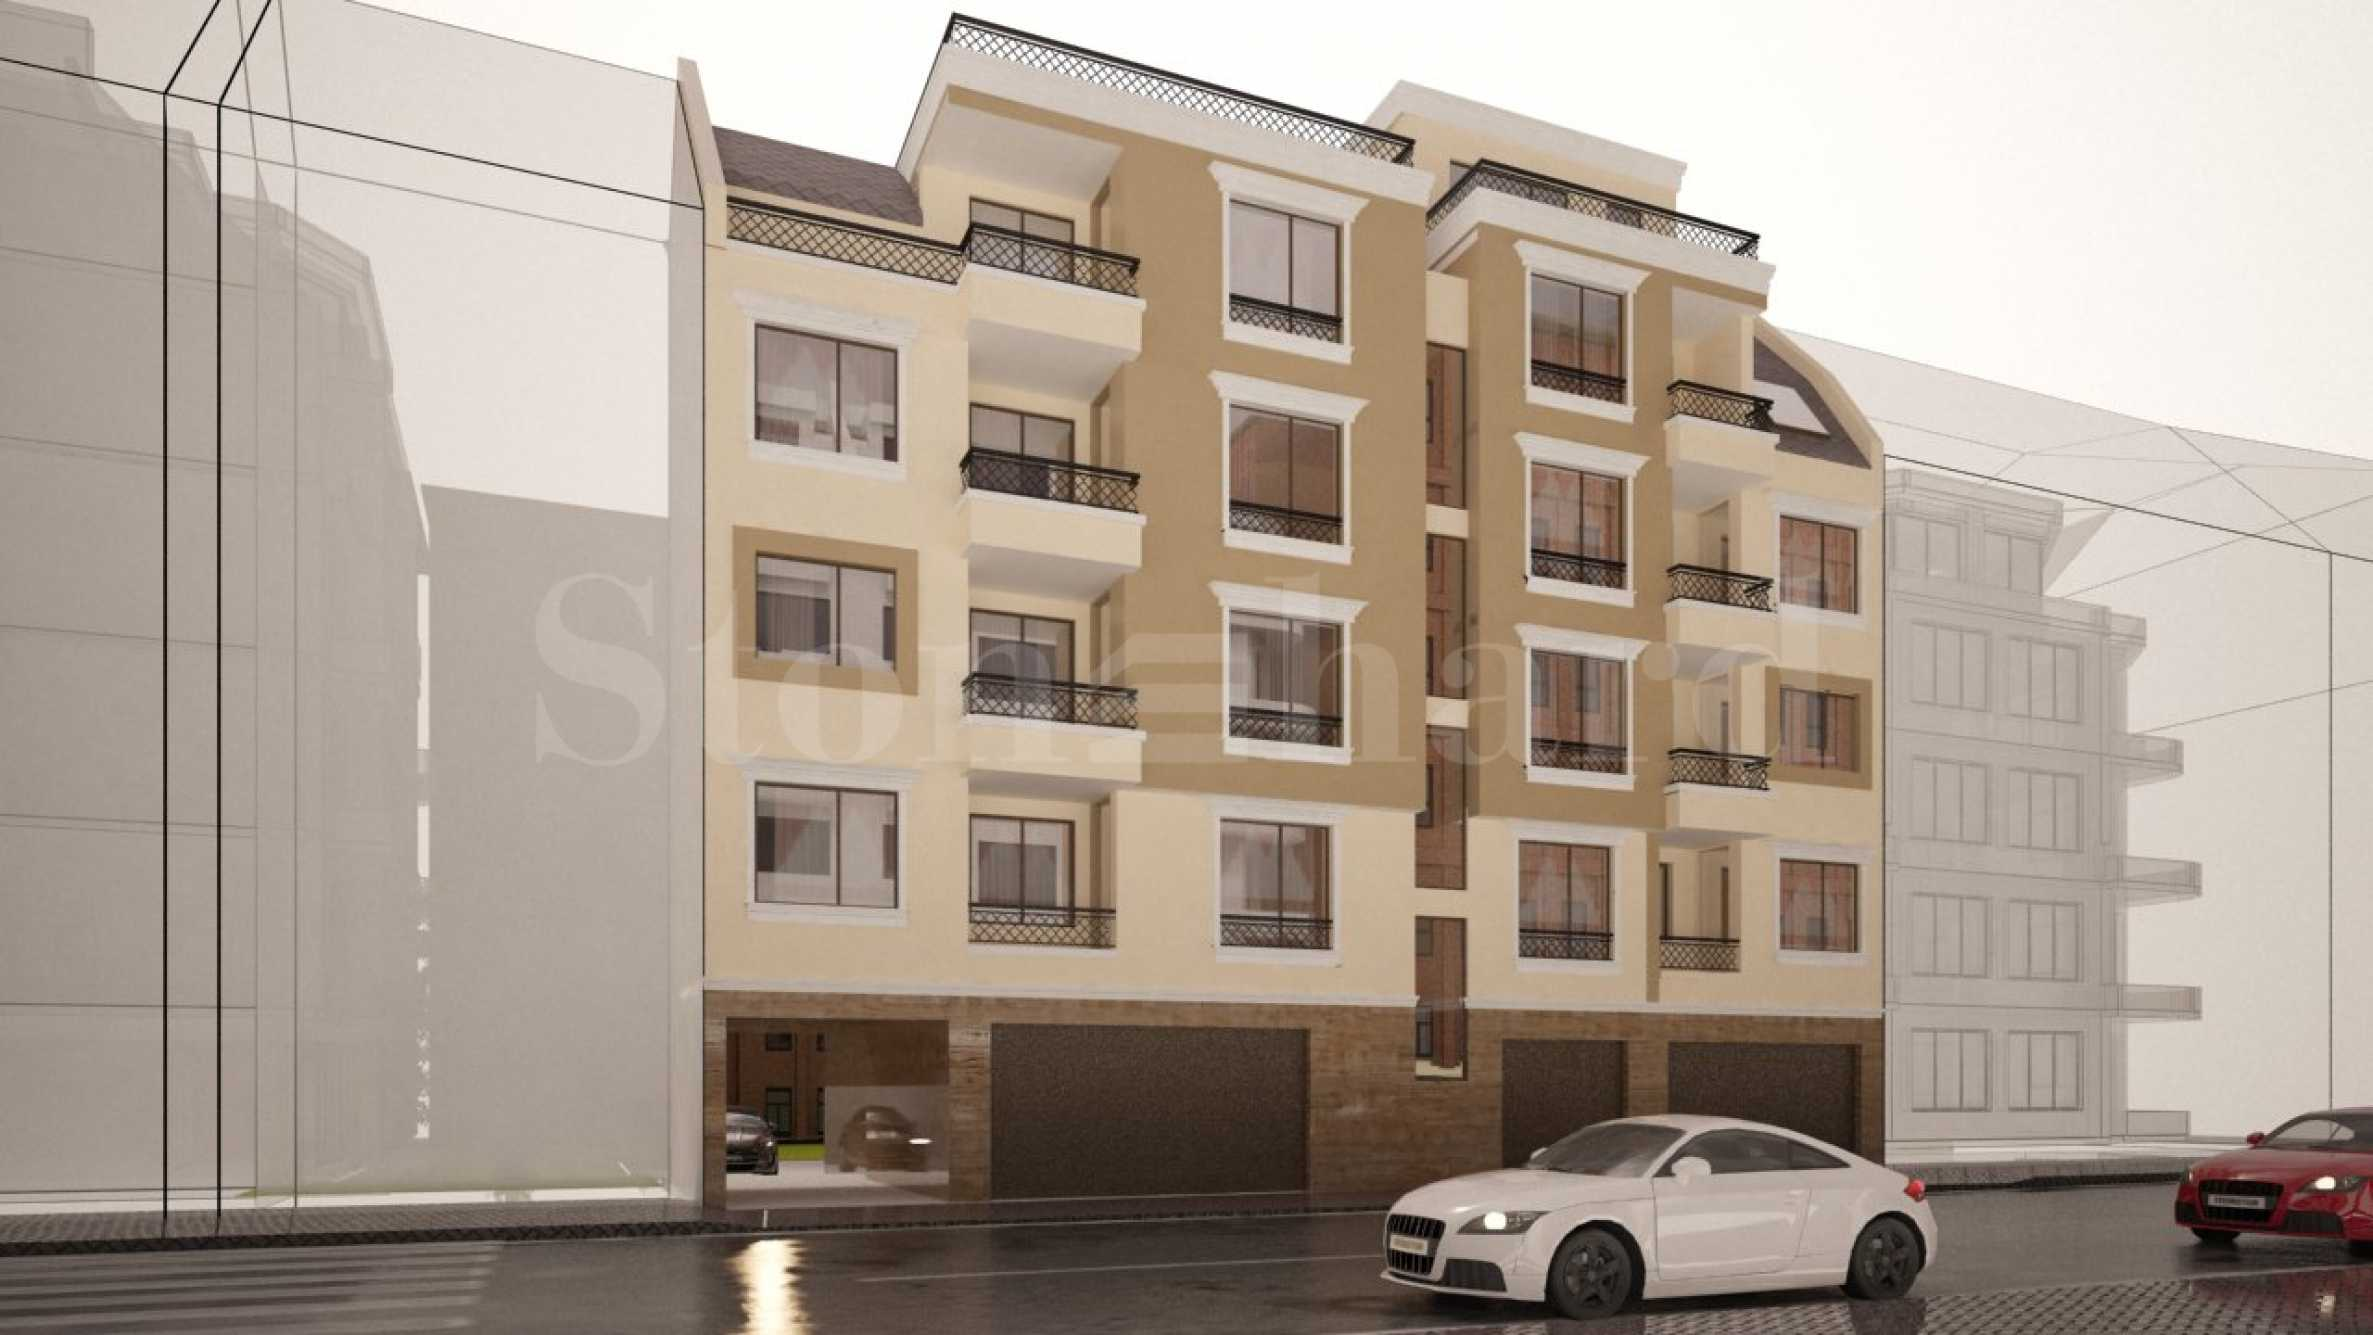 New elegant 5-storey building near the park in Burgas 1 - Stonehard